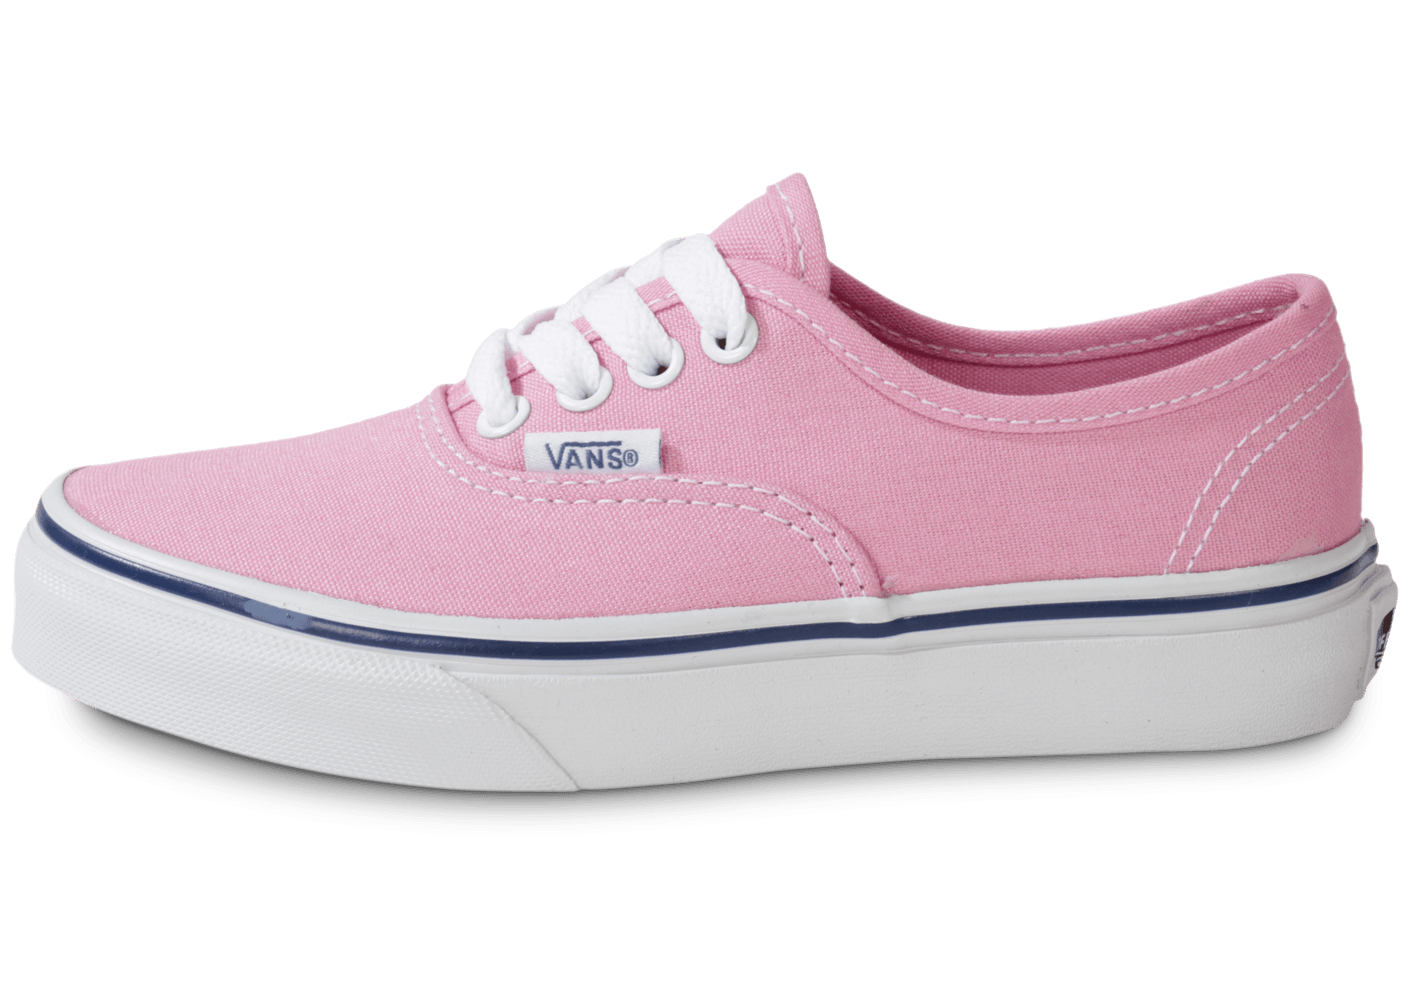 vans authentic rose enfant chaussures chaussures chausport. Black Bedroom Furniture Sets. Home Design Ideas